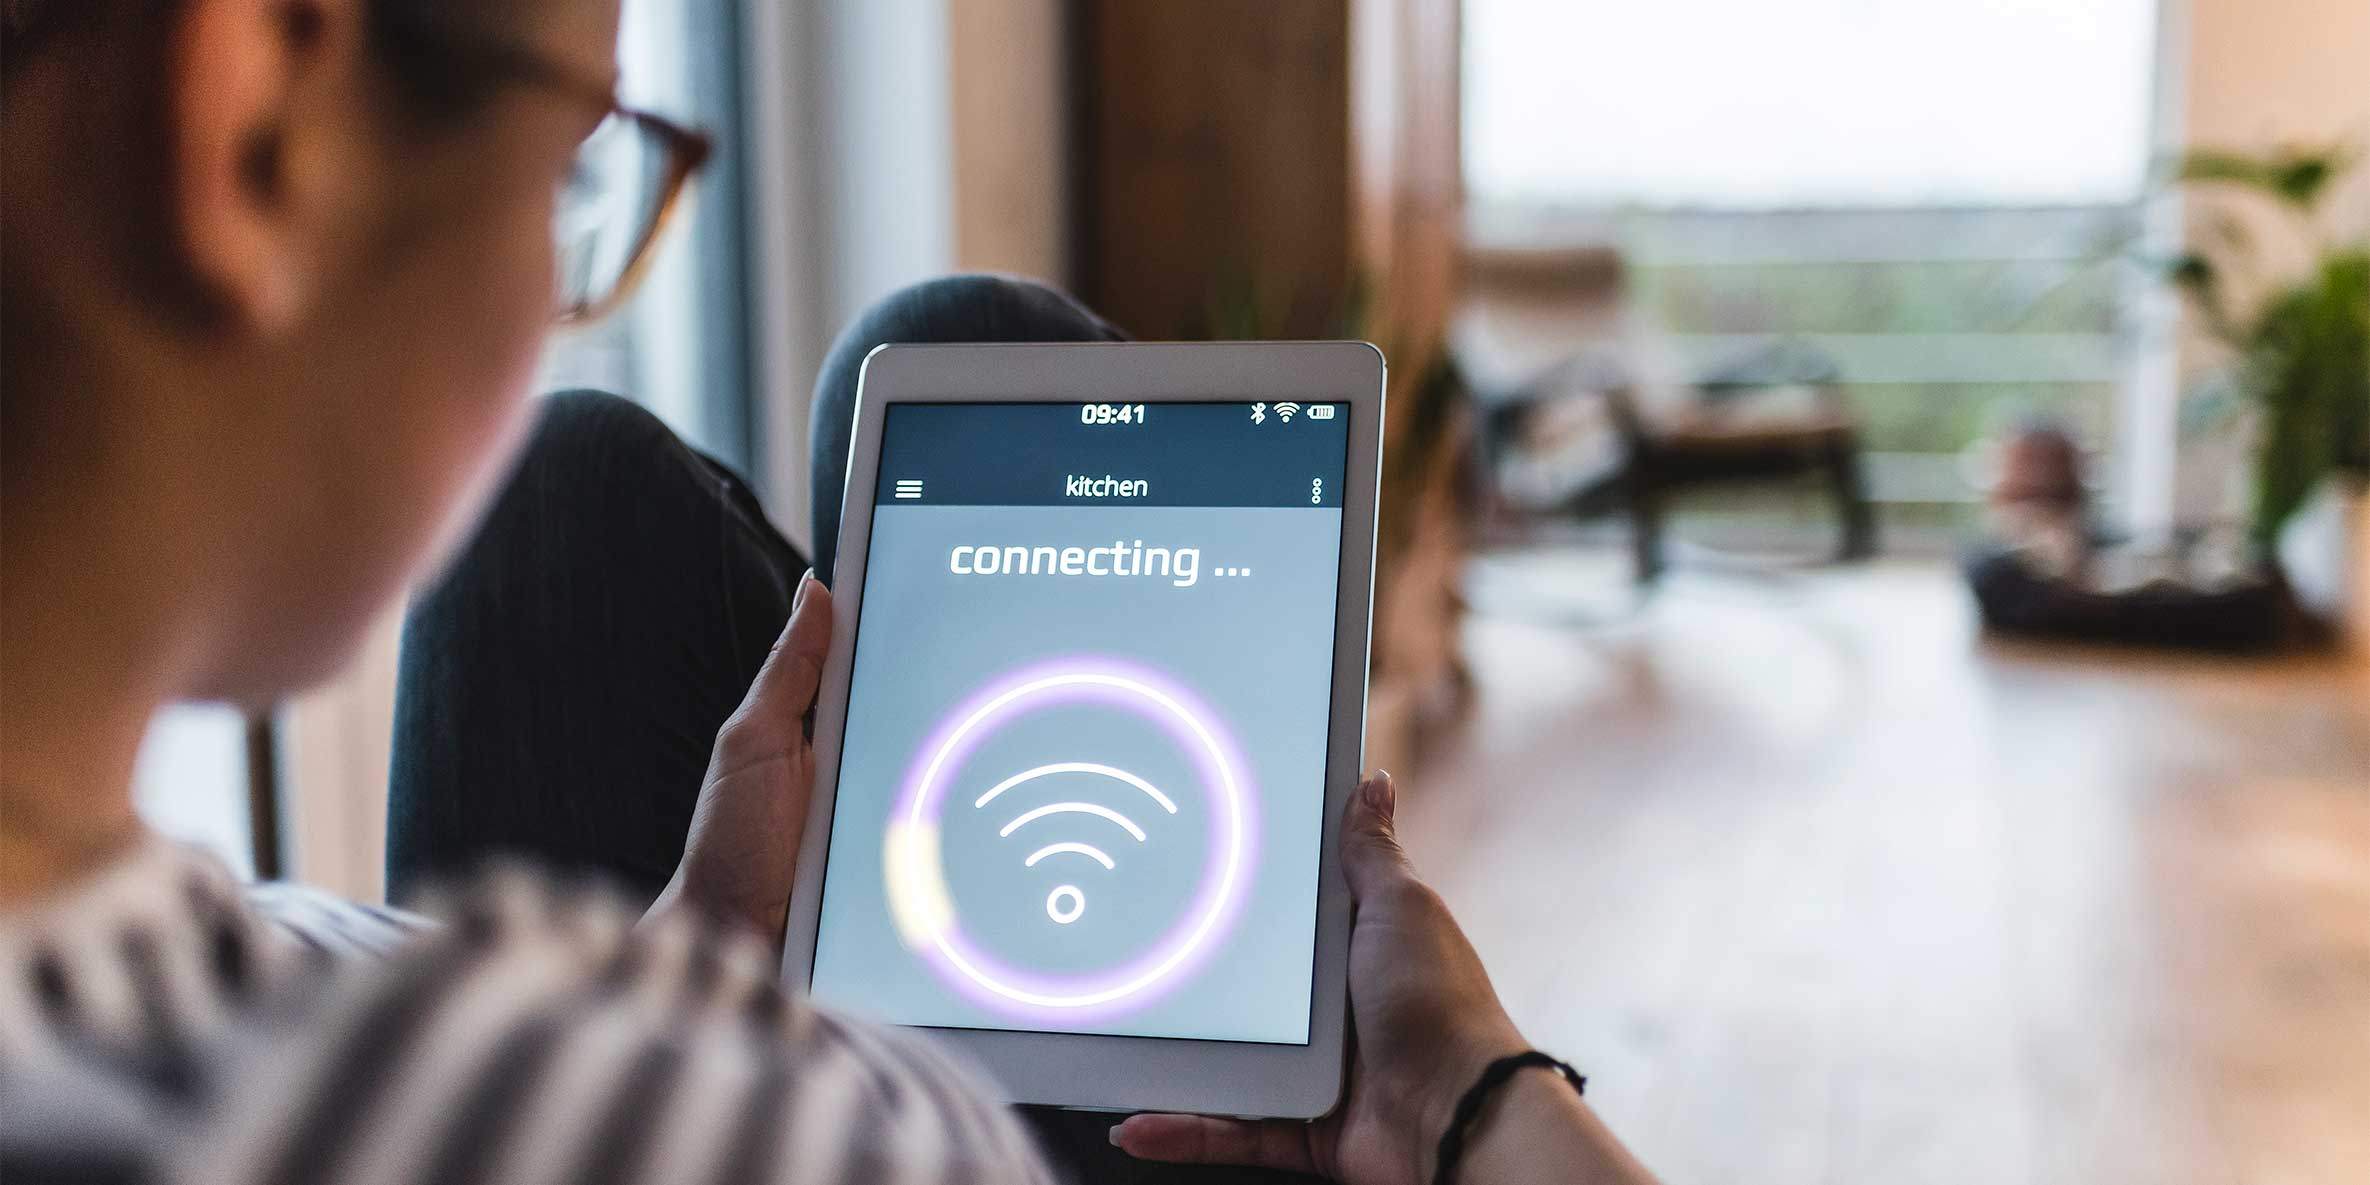 3 Ways Your Home Wi-Fi Can Be Hacked